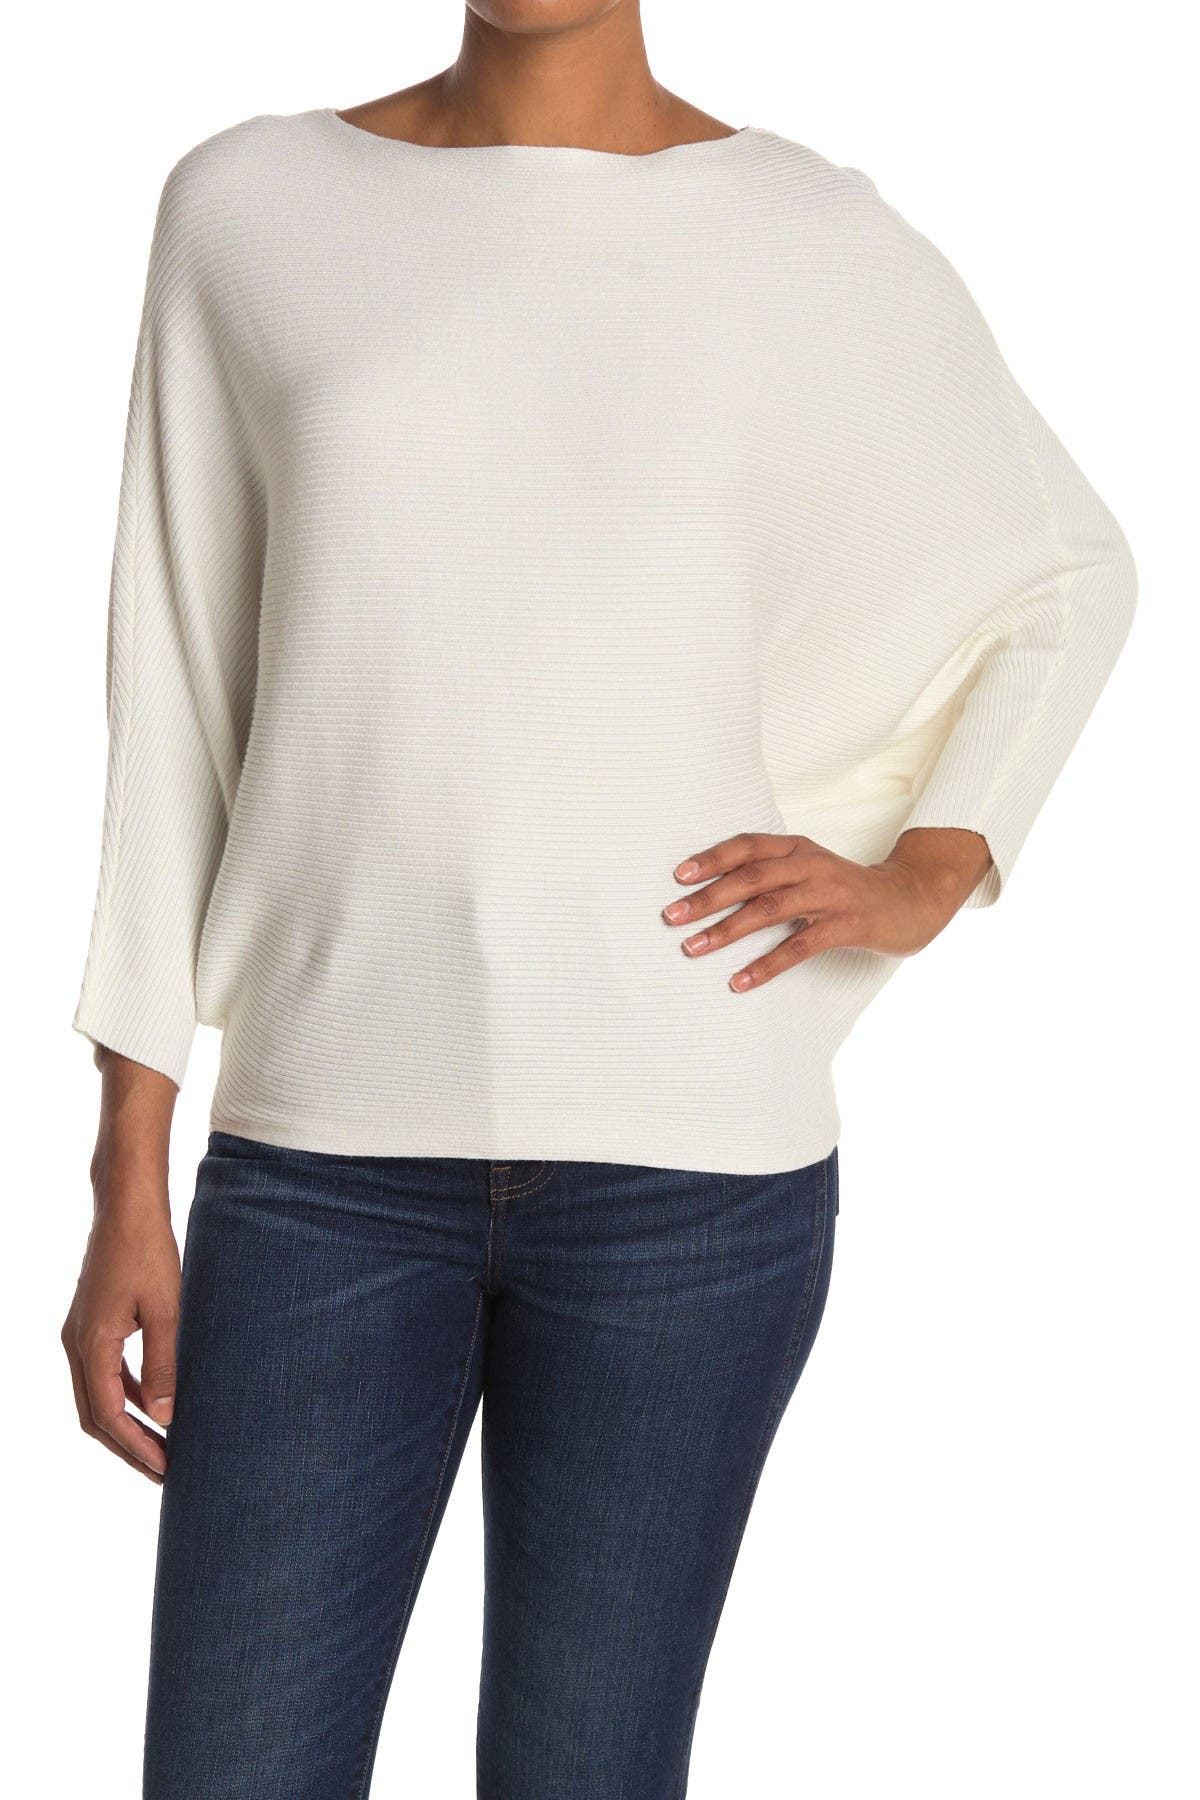 Image of Cloth By Design Dolman Ribbed Pullover